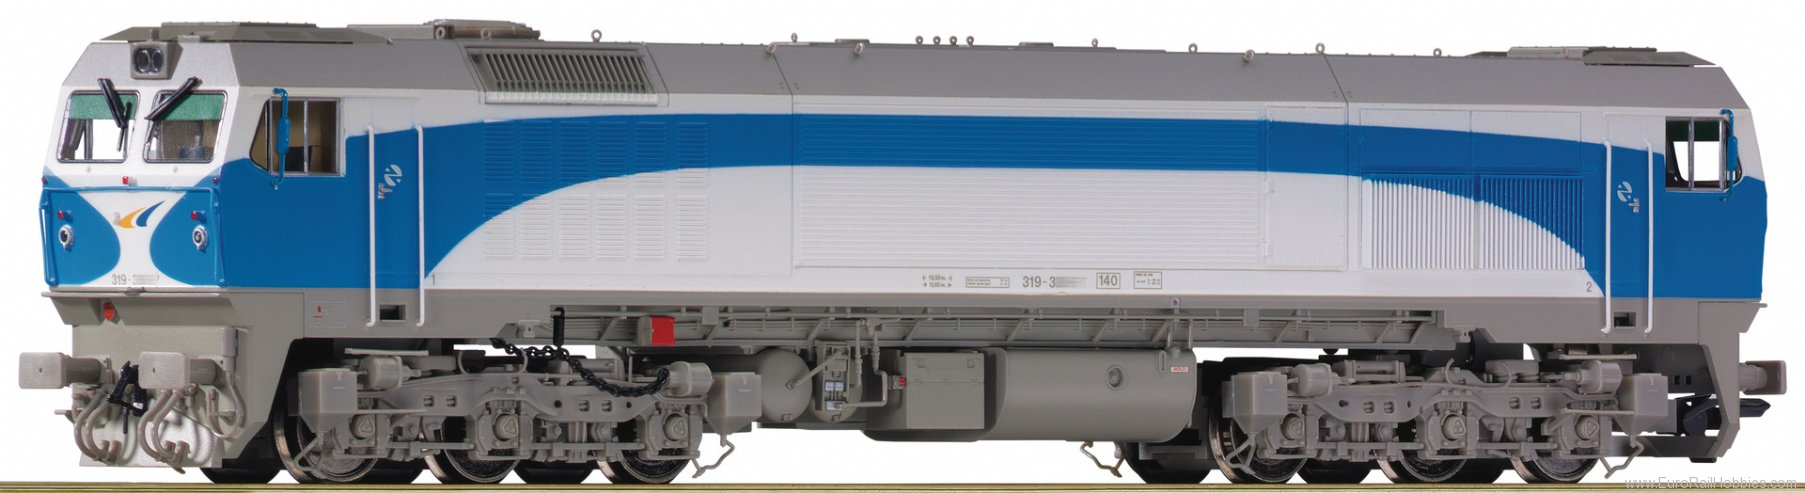 Roco 73692 Diesel locomotive series 319, RENFE